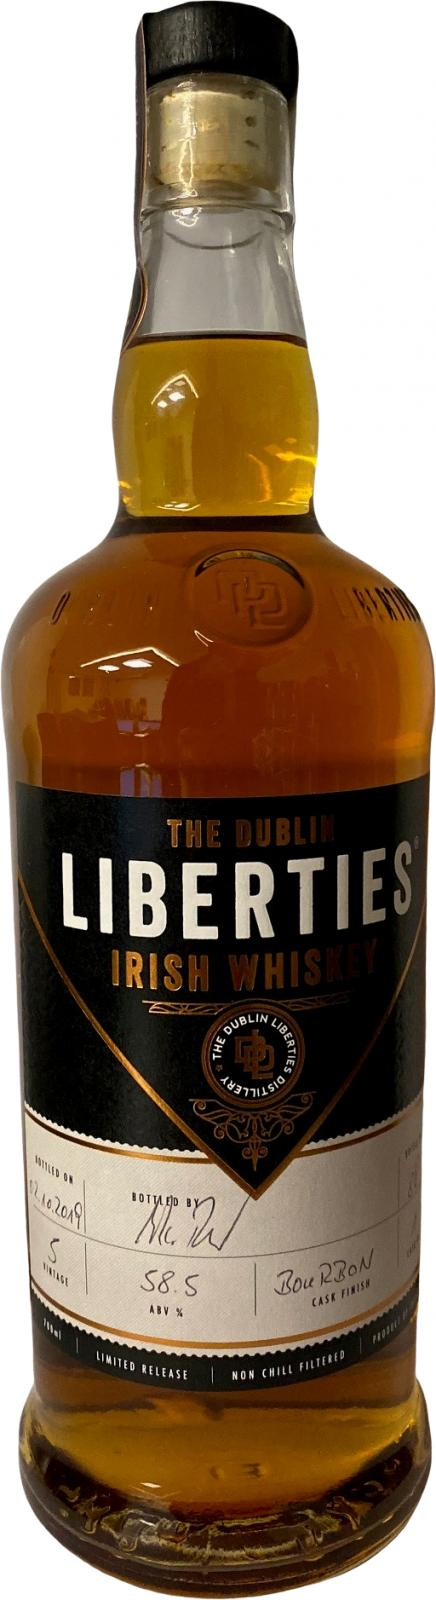 The Dublin Liberties 05-year-old